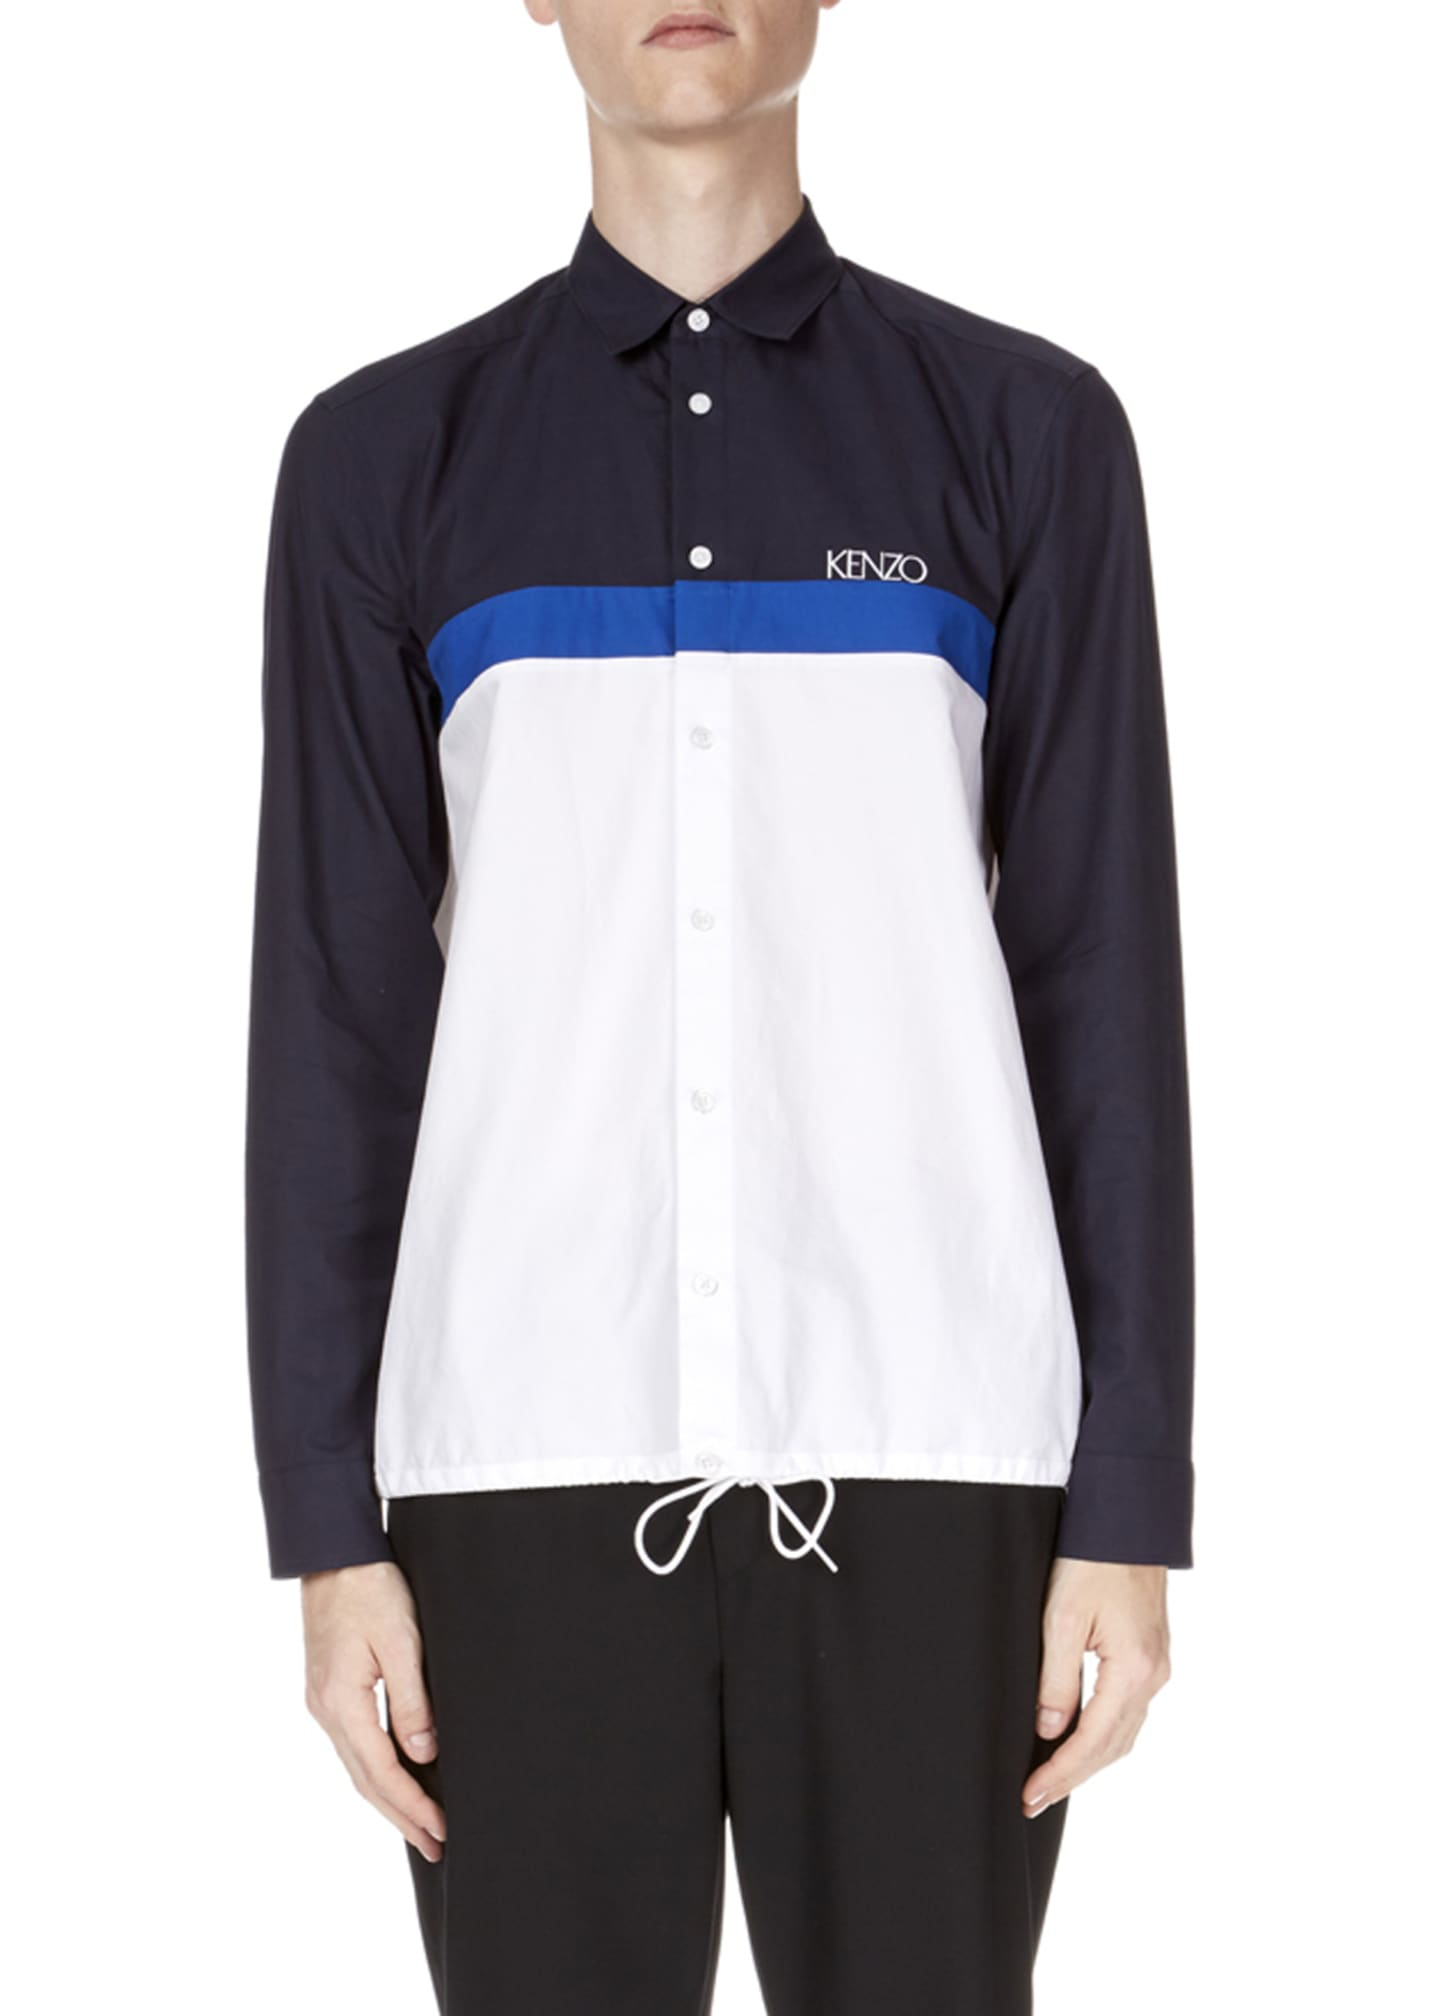 Kenzo Men's Drawstring Casual Fit Sport Shirt